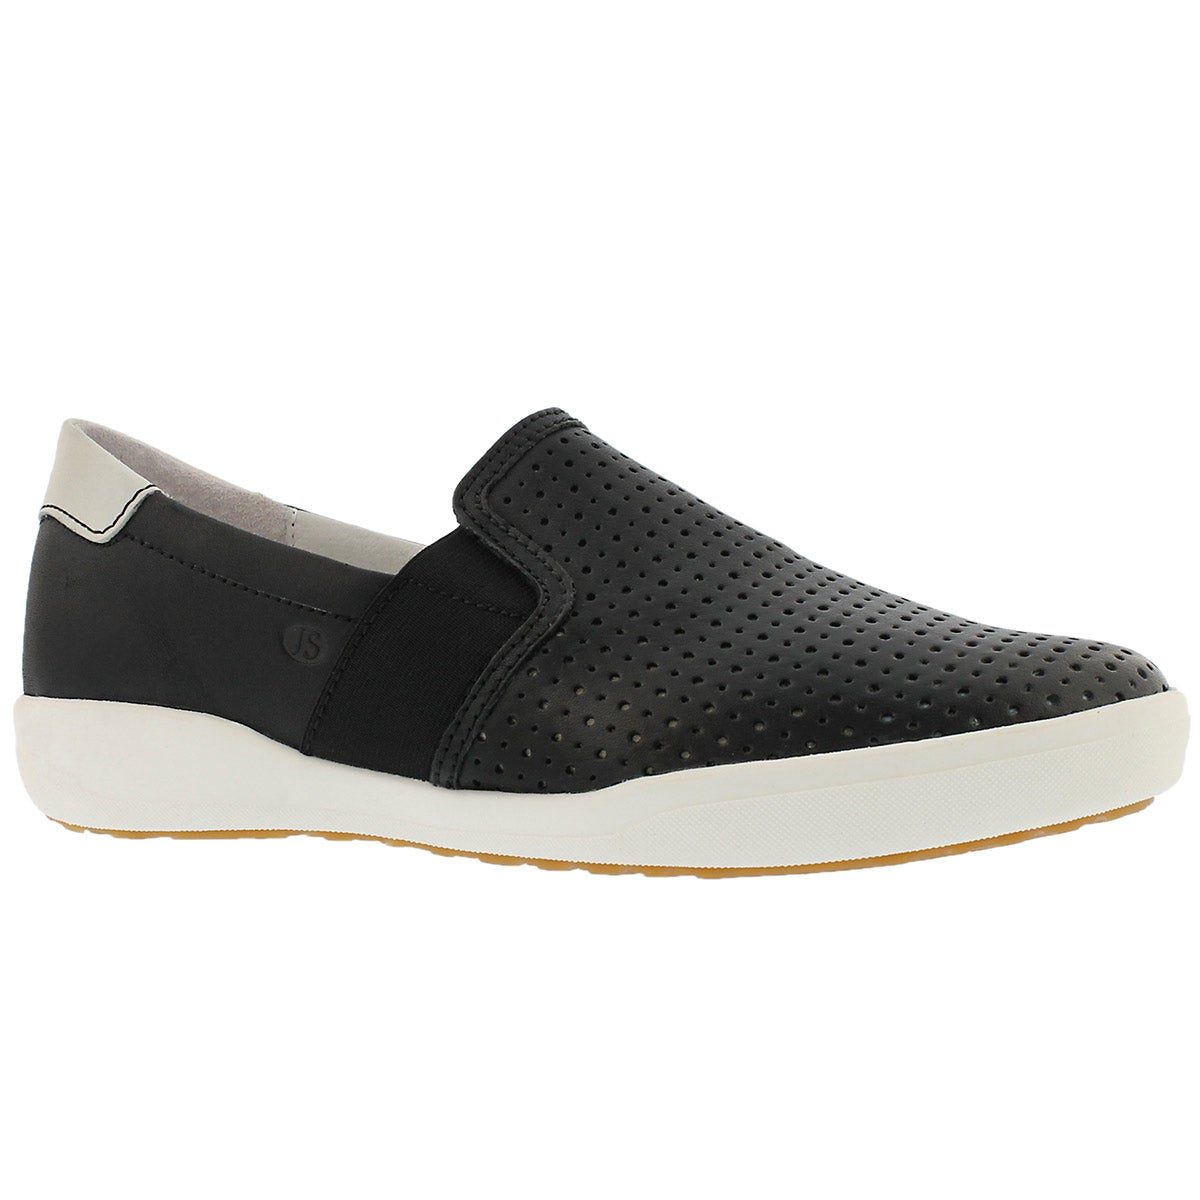 Women's SINA 15 black casual slip on shoes